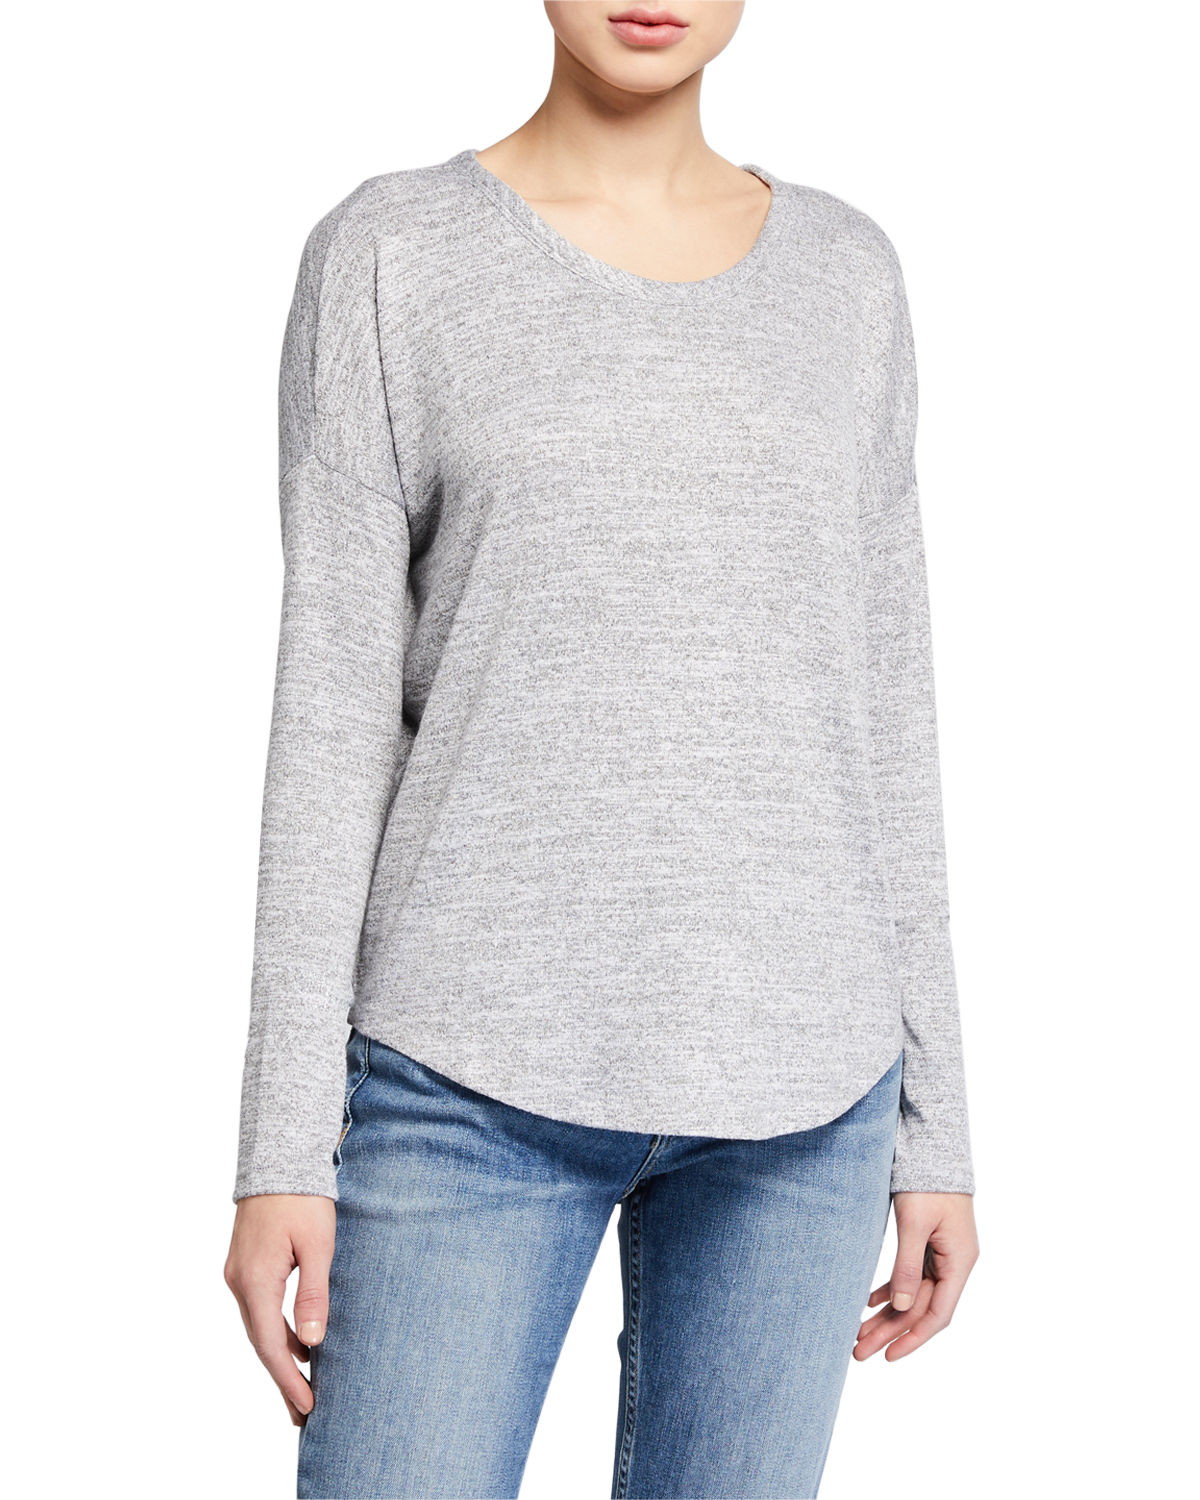 Rag & Bone Tops HUDSON CREWNECK LONG-SLEEVE TOP